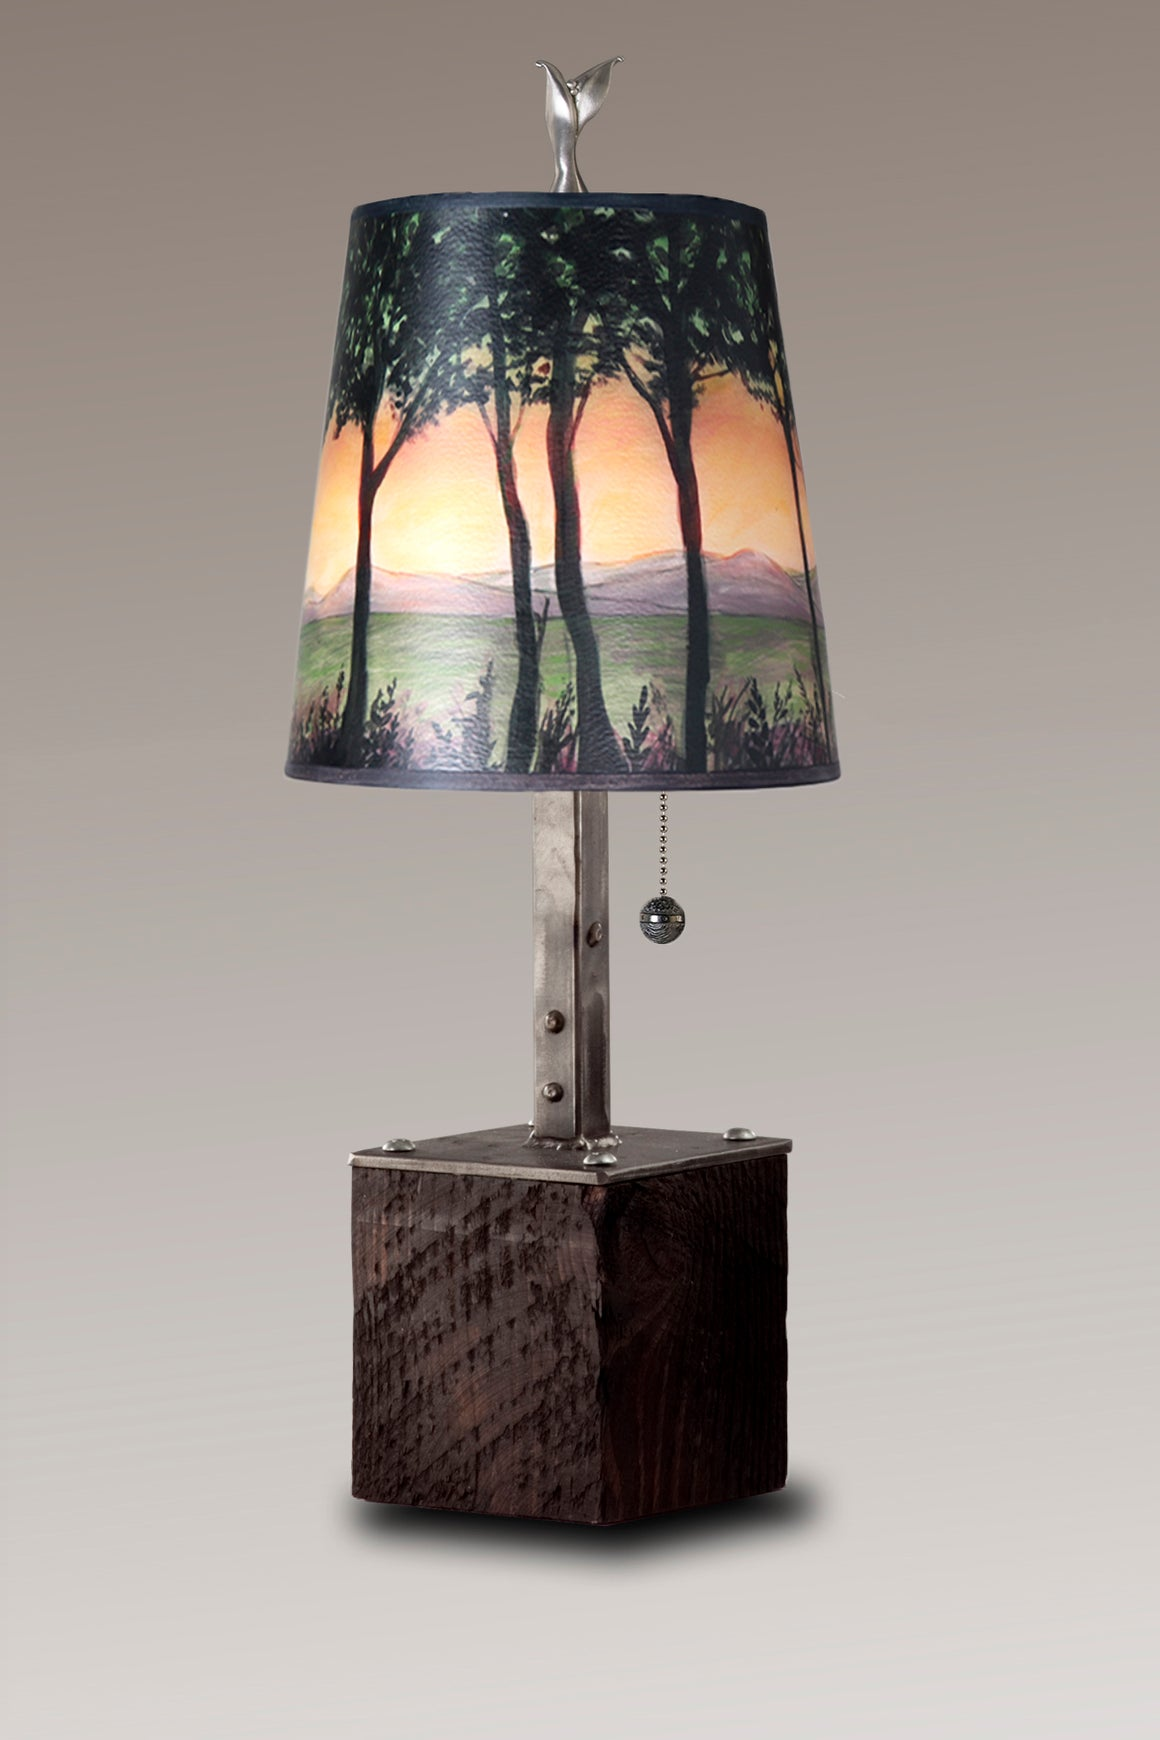 Steel Table Lamp on Reclaimed Wood with Small Drum Shade in Dawn